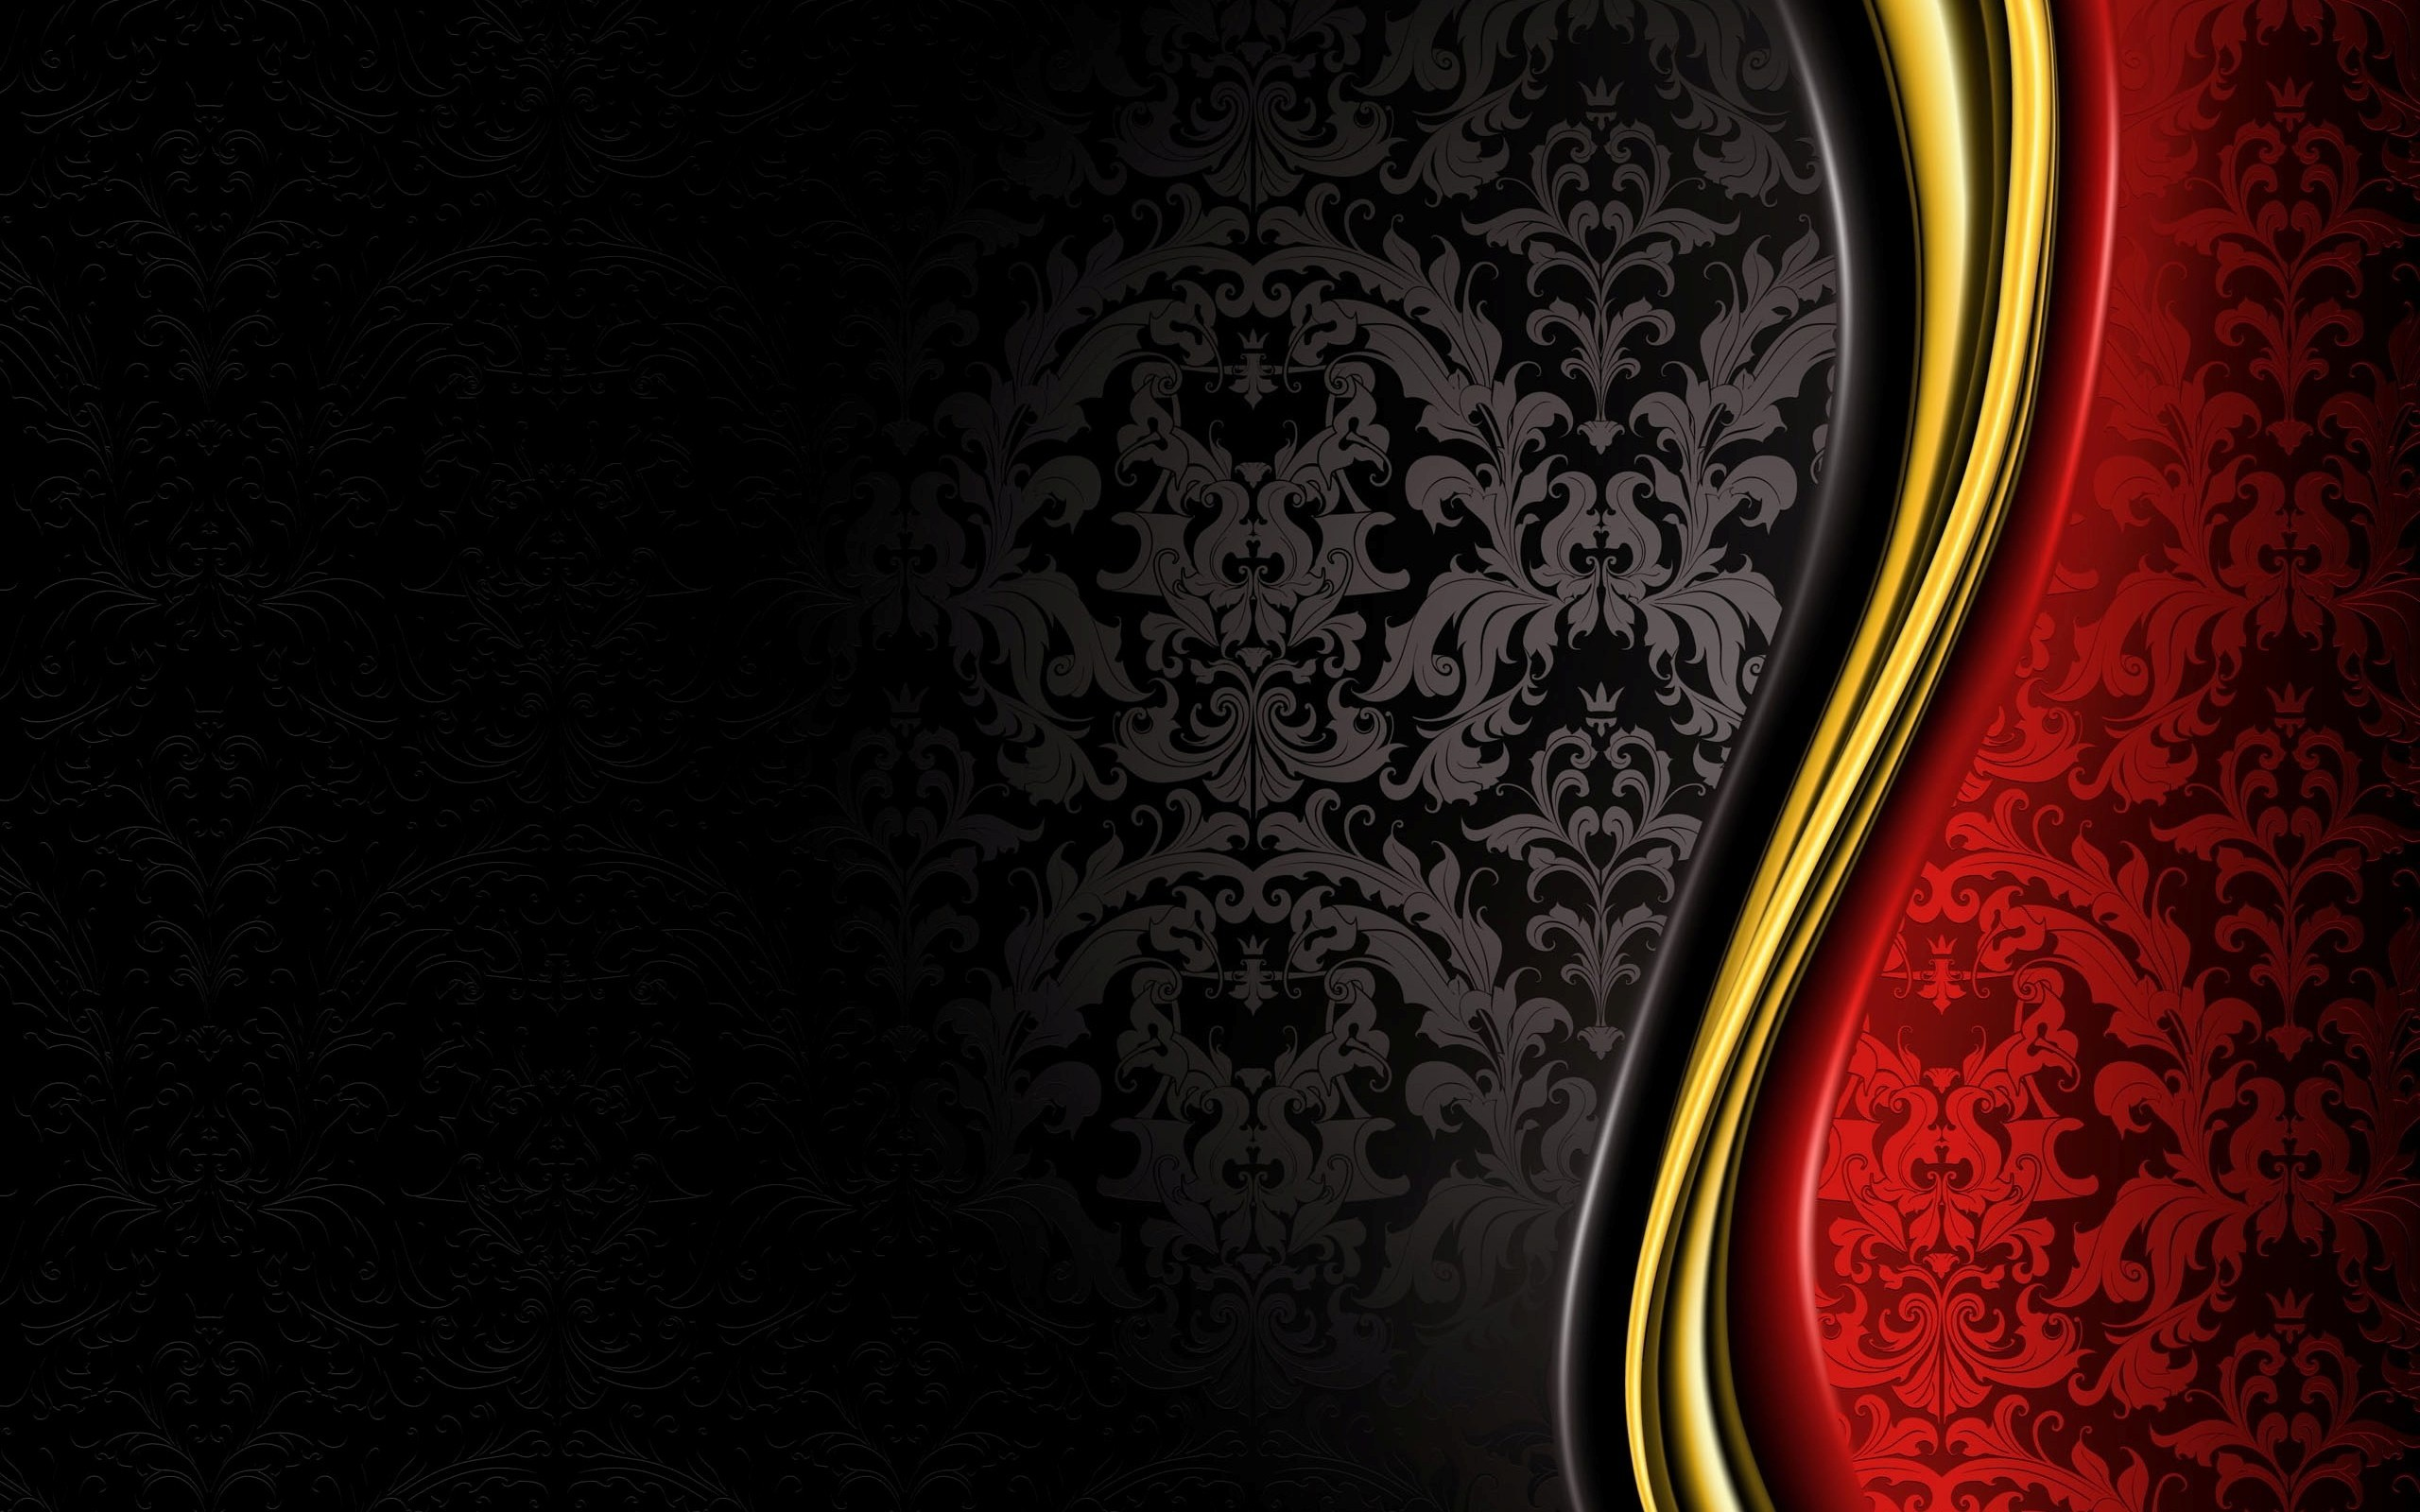 Wallpaper · Black and Red Backgrounds …